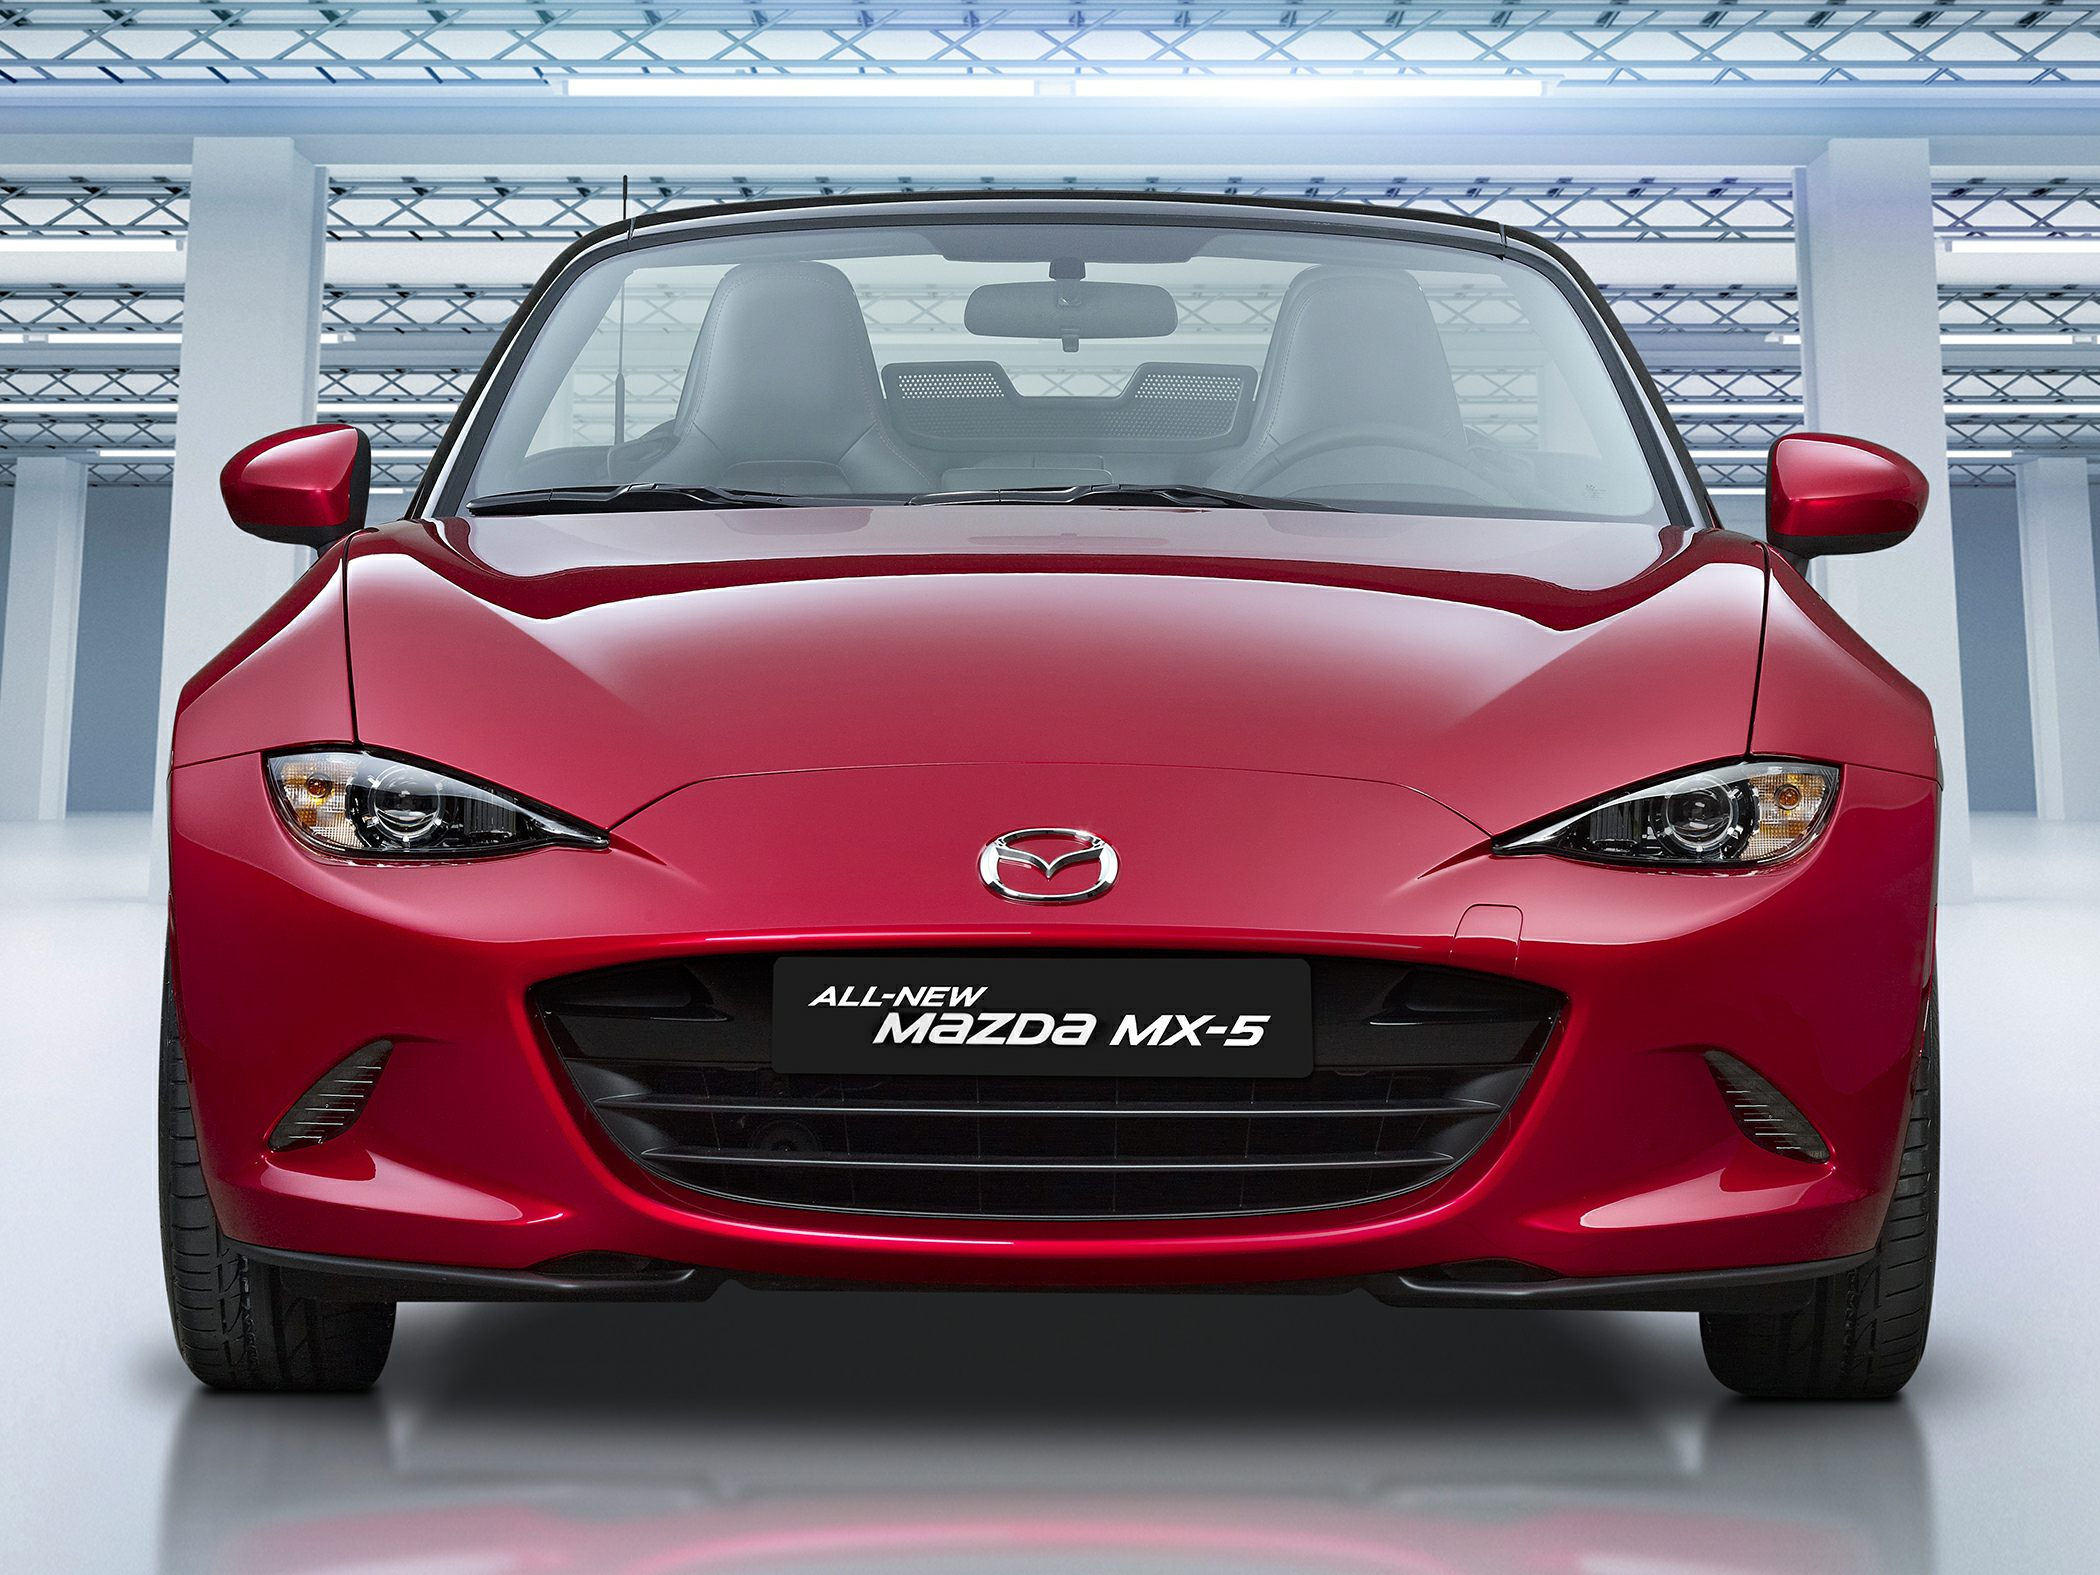 Mazda MX-5 Front Grille